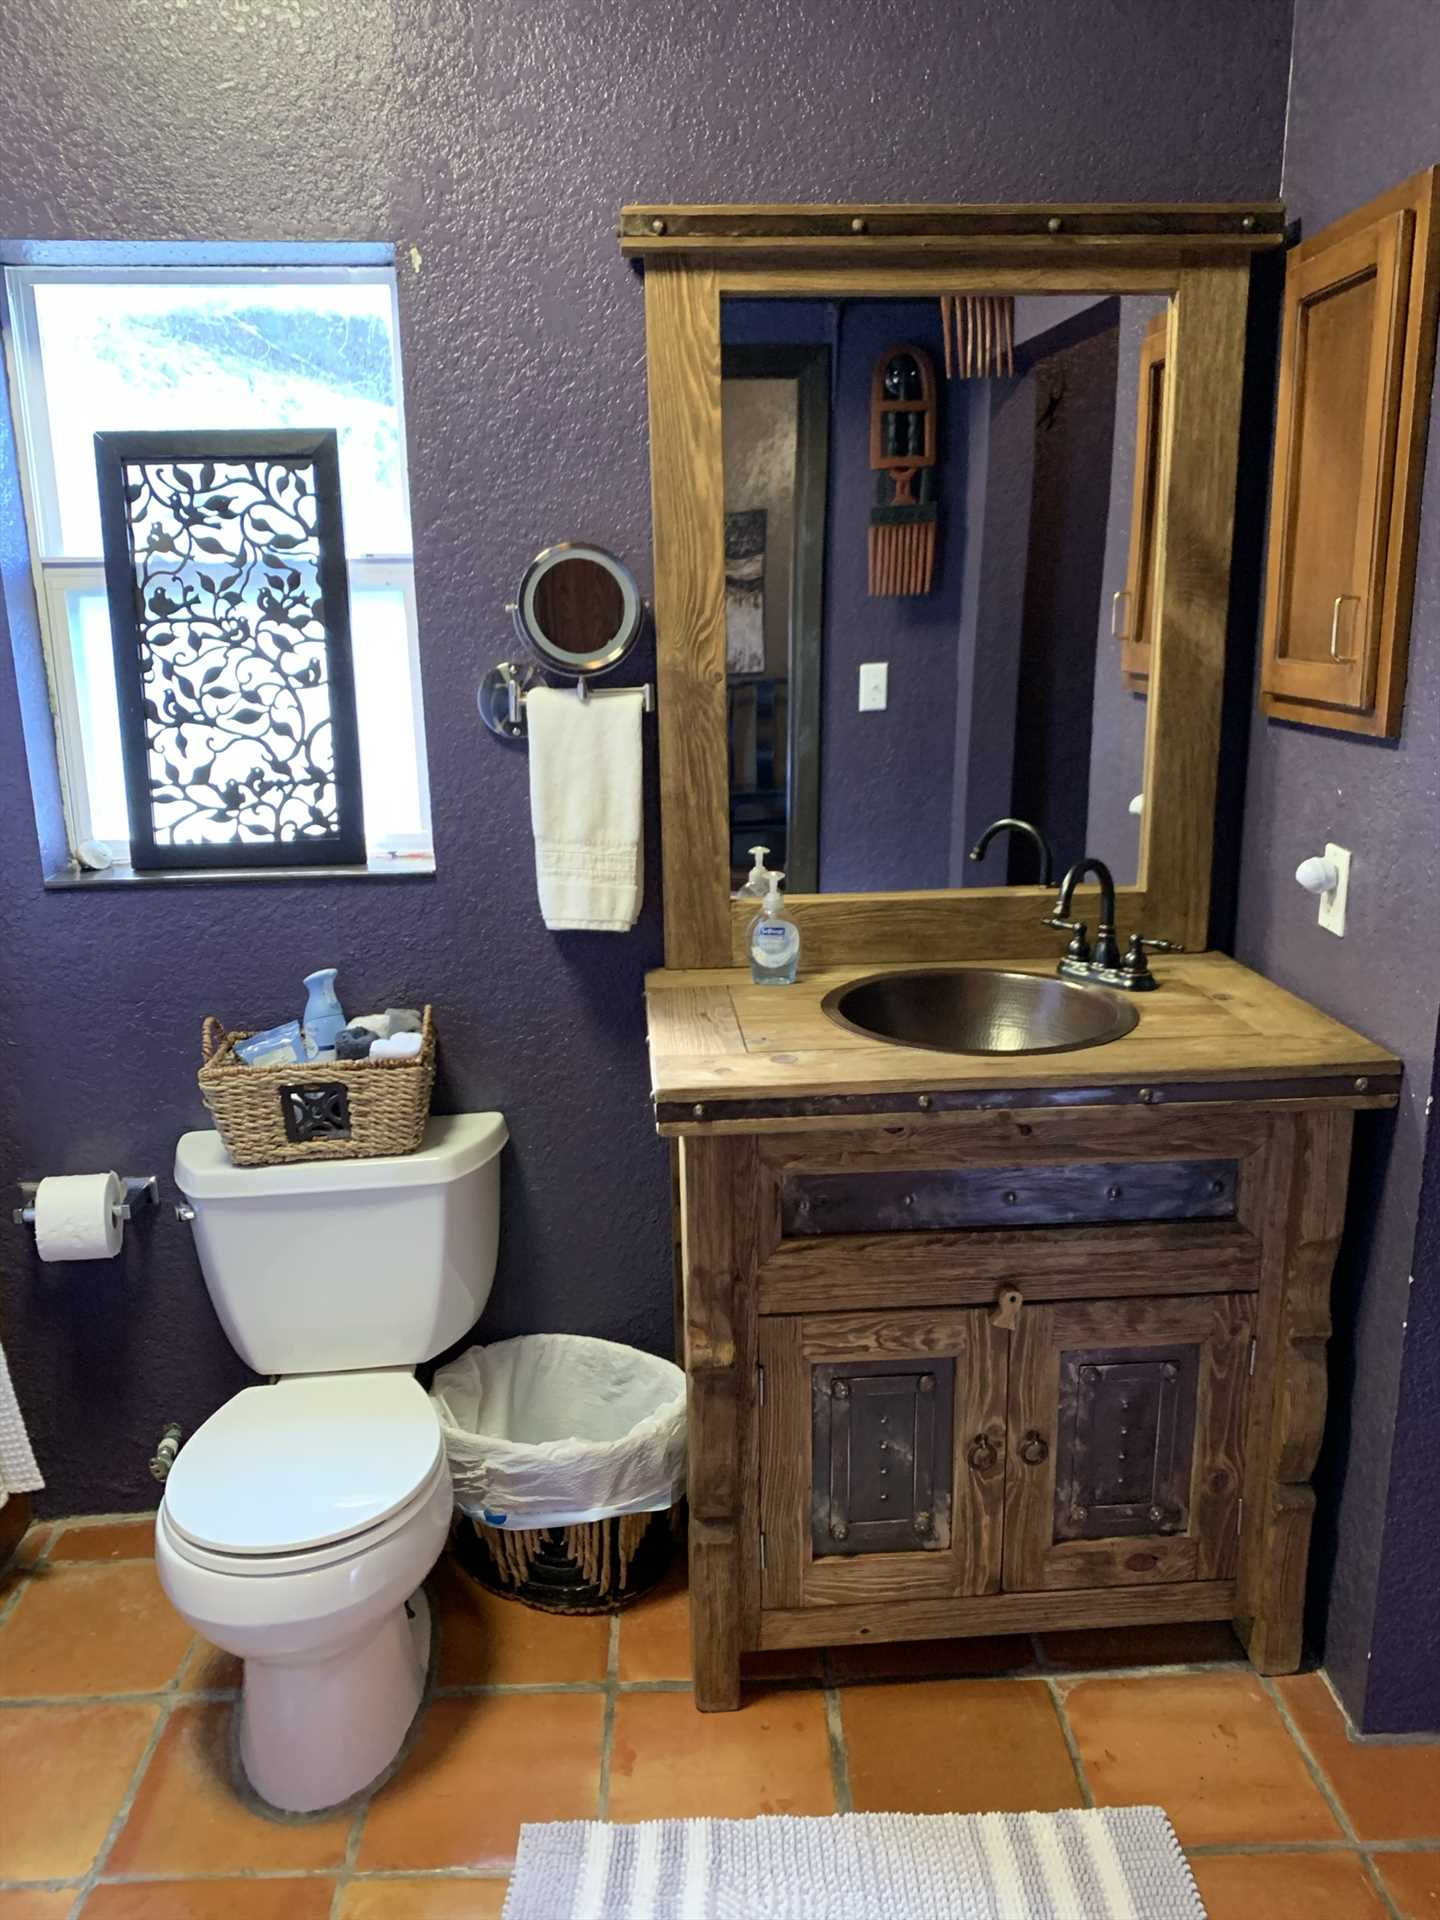 The stylish bathroom is stocked with select toiletries, a hair dryer, and even an iron and ironing board!